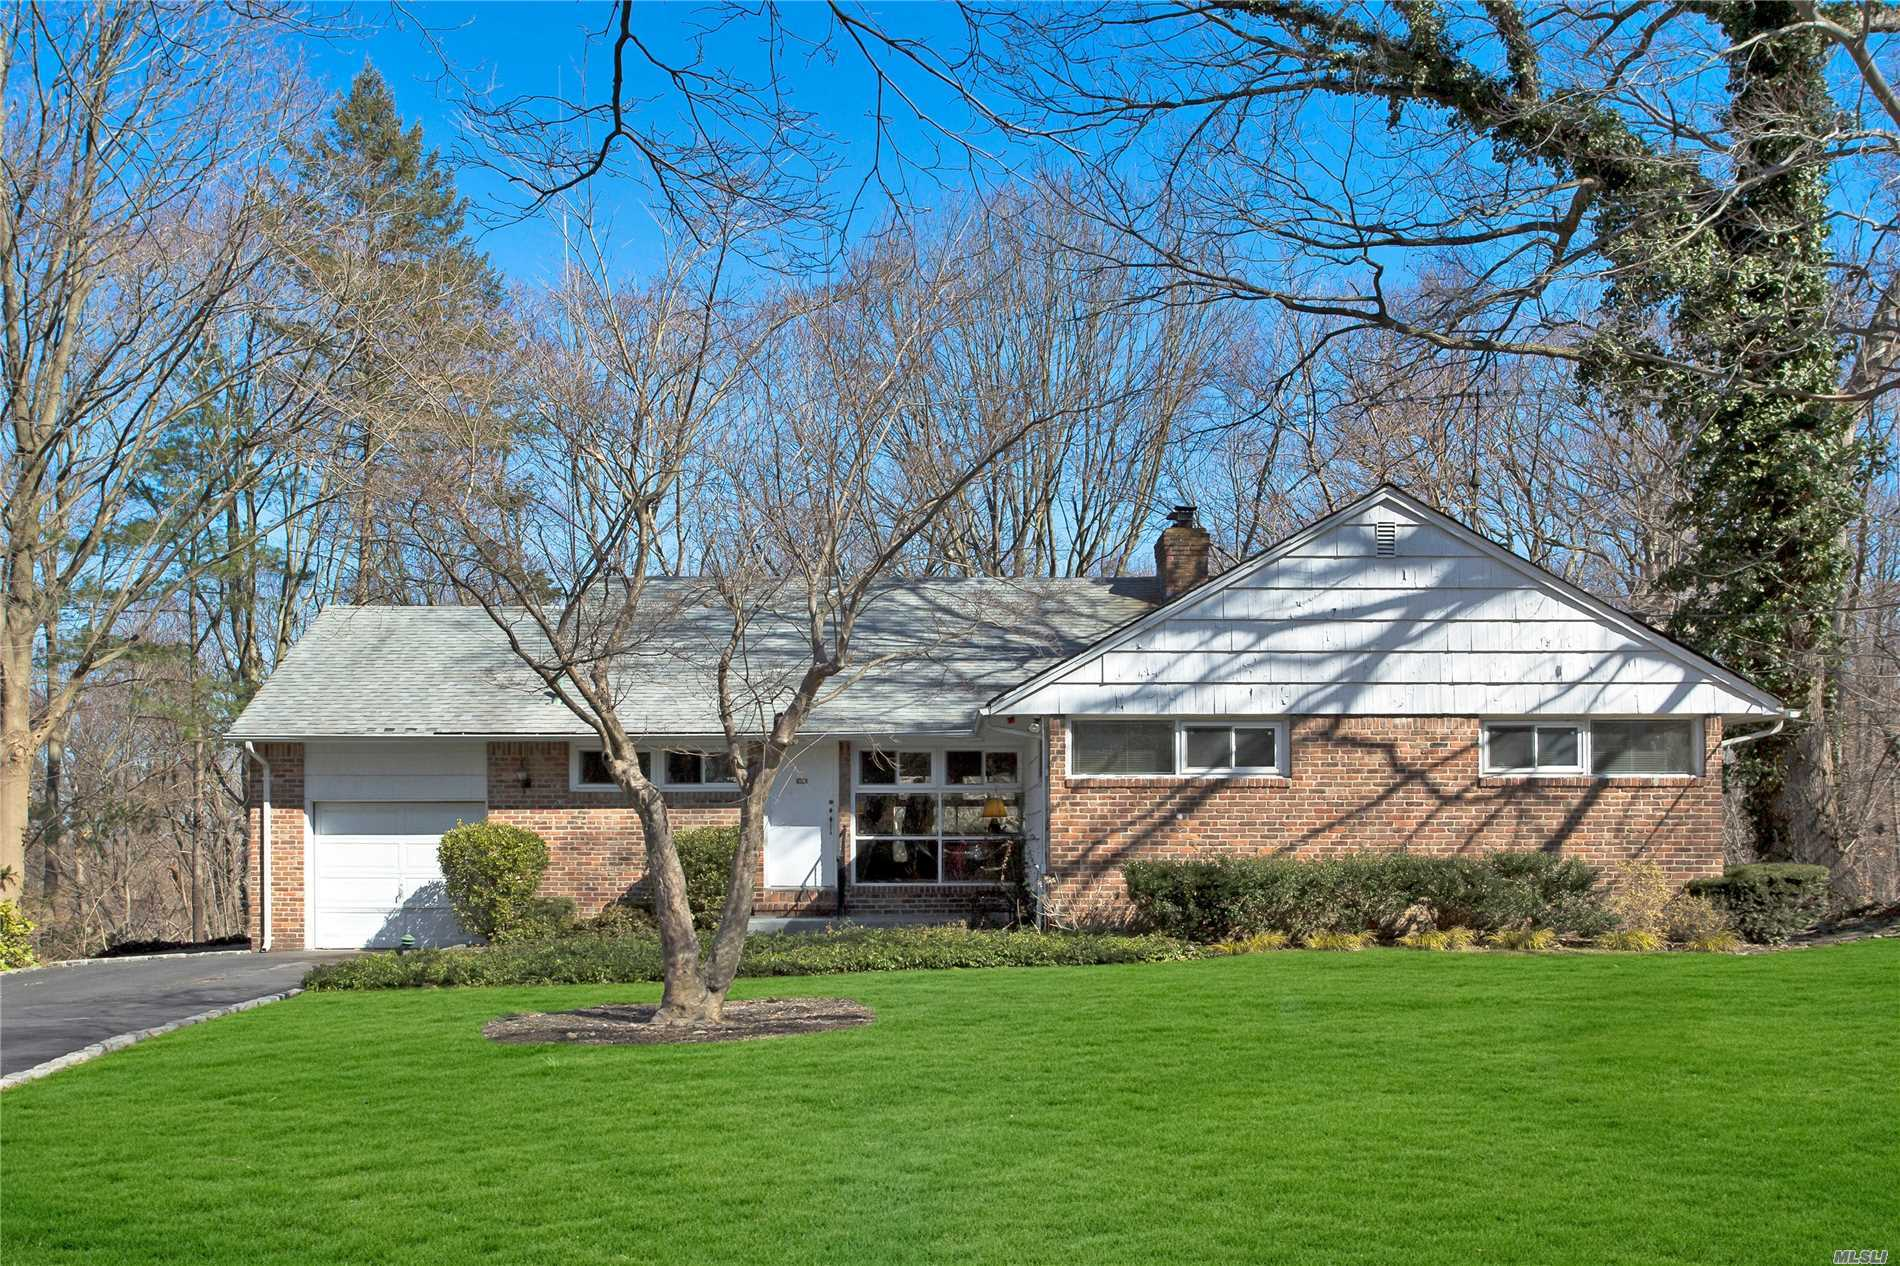 Roslyn Harbor Ranch with three bedrooms, two full baths, glass walled living room with fireplace and dining room overlooking picturesque one acre. Golden opportunity with amazing taxes